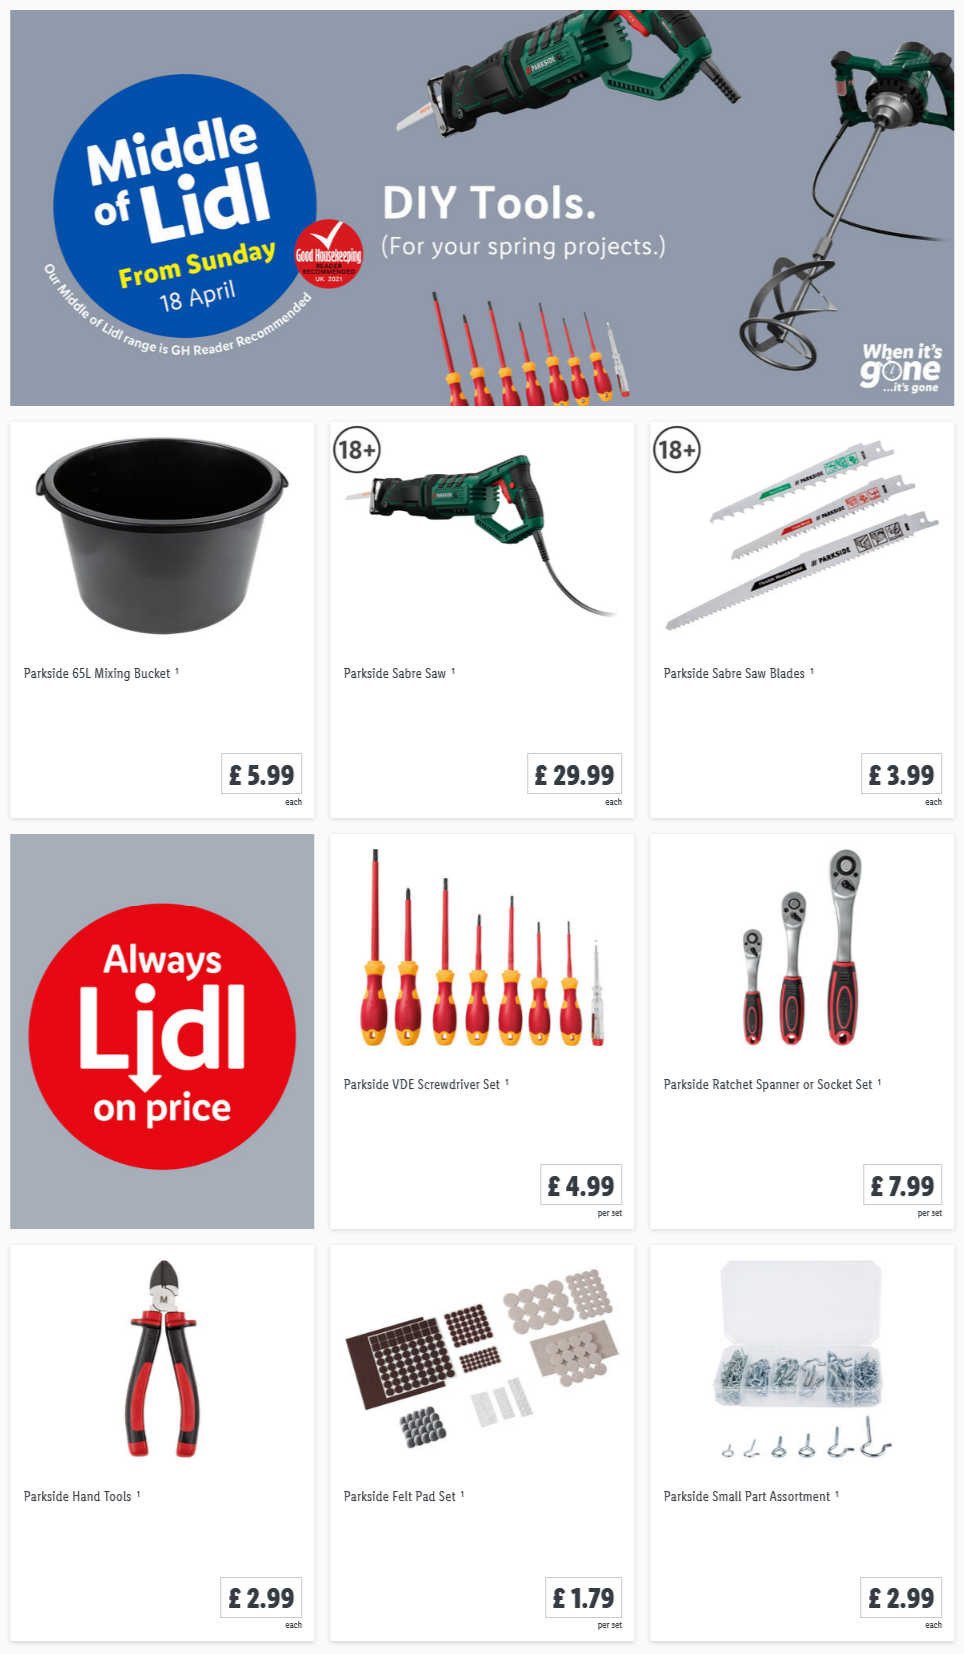 LIDL Sunday Offers DIY Tools from 18th April 2021